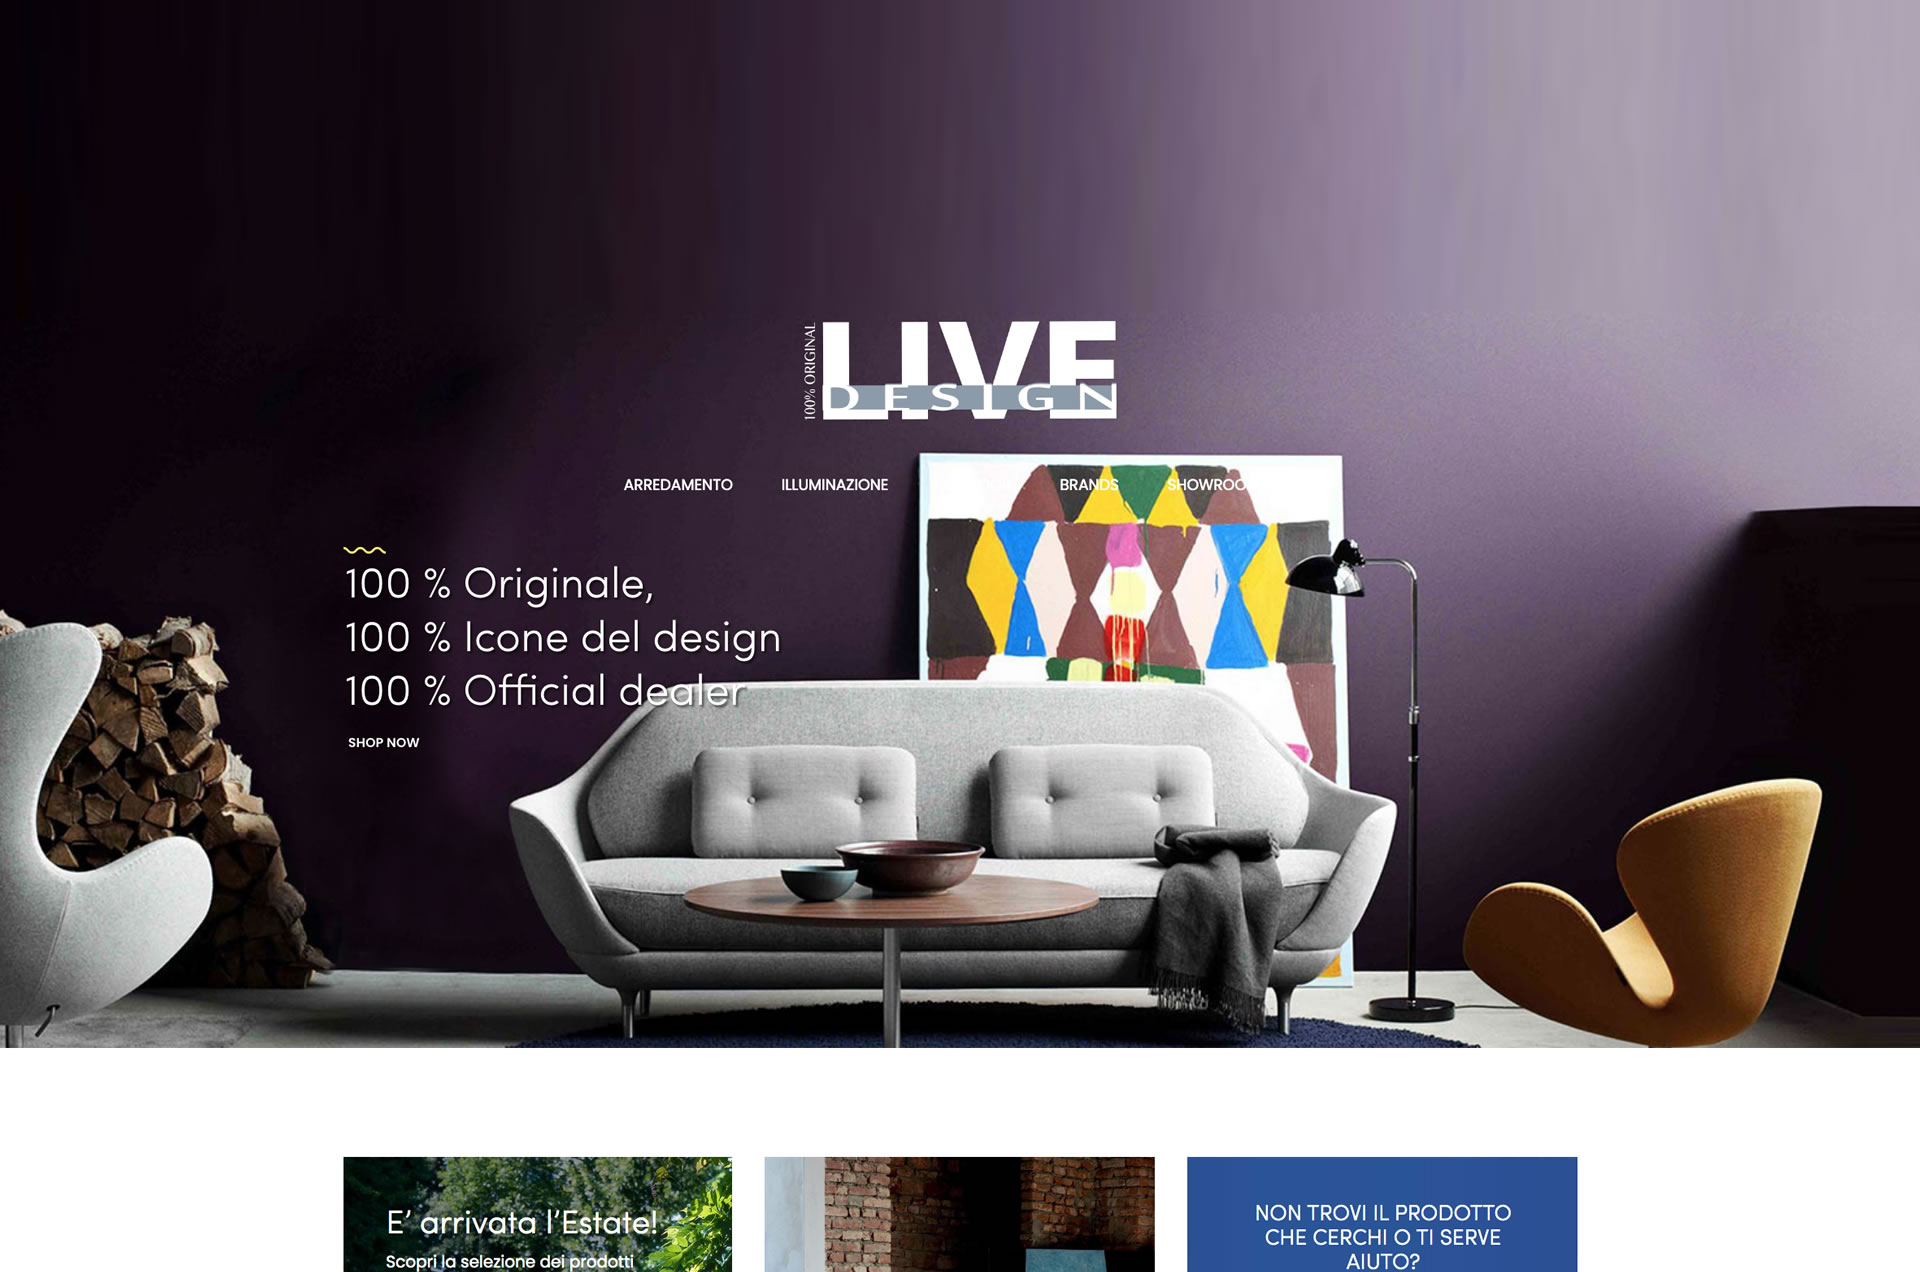 E-shop Online Live Design - www.live-design.it